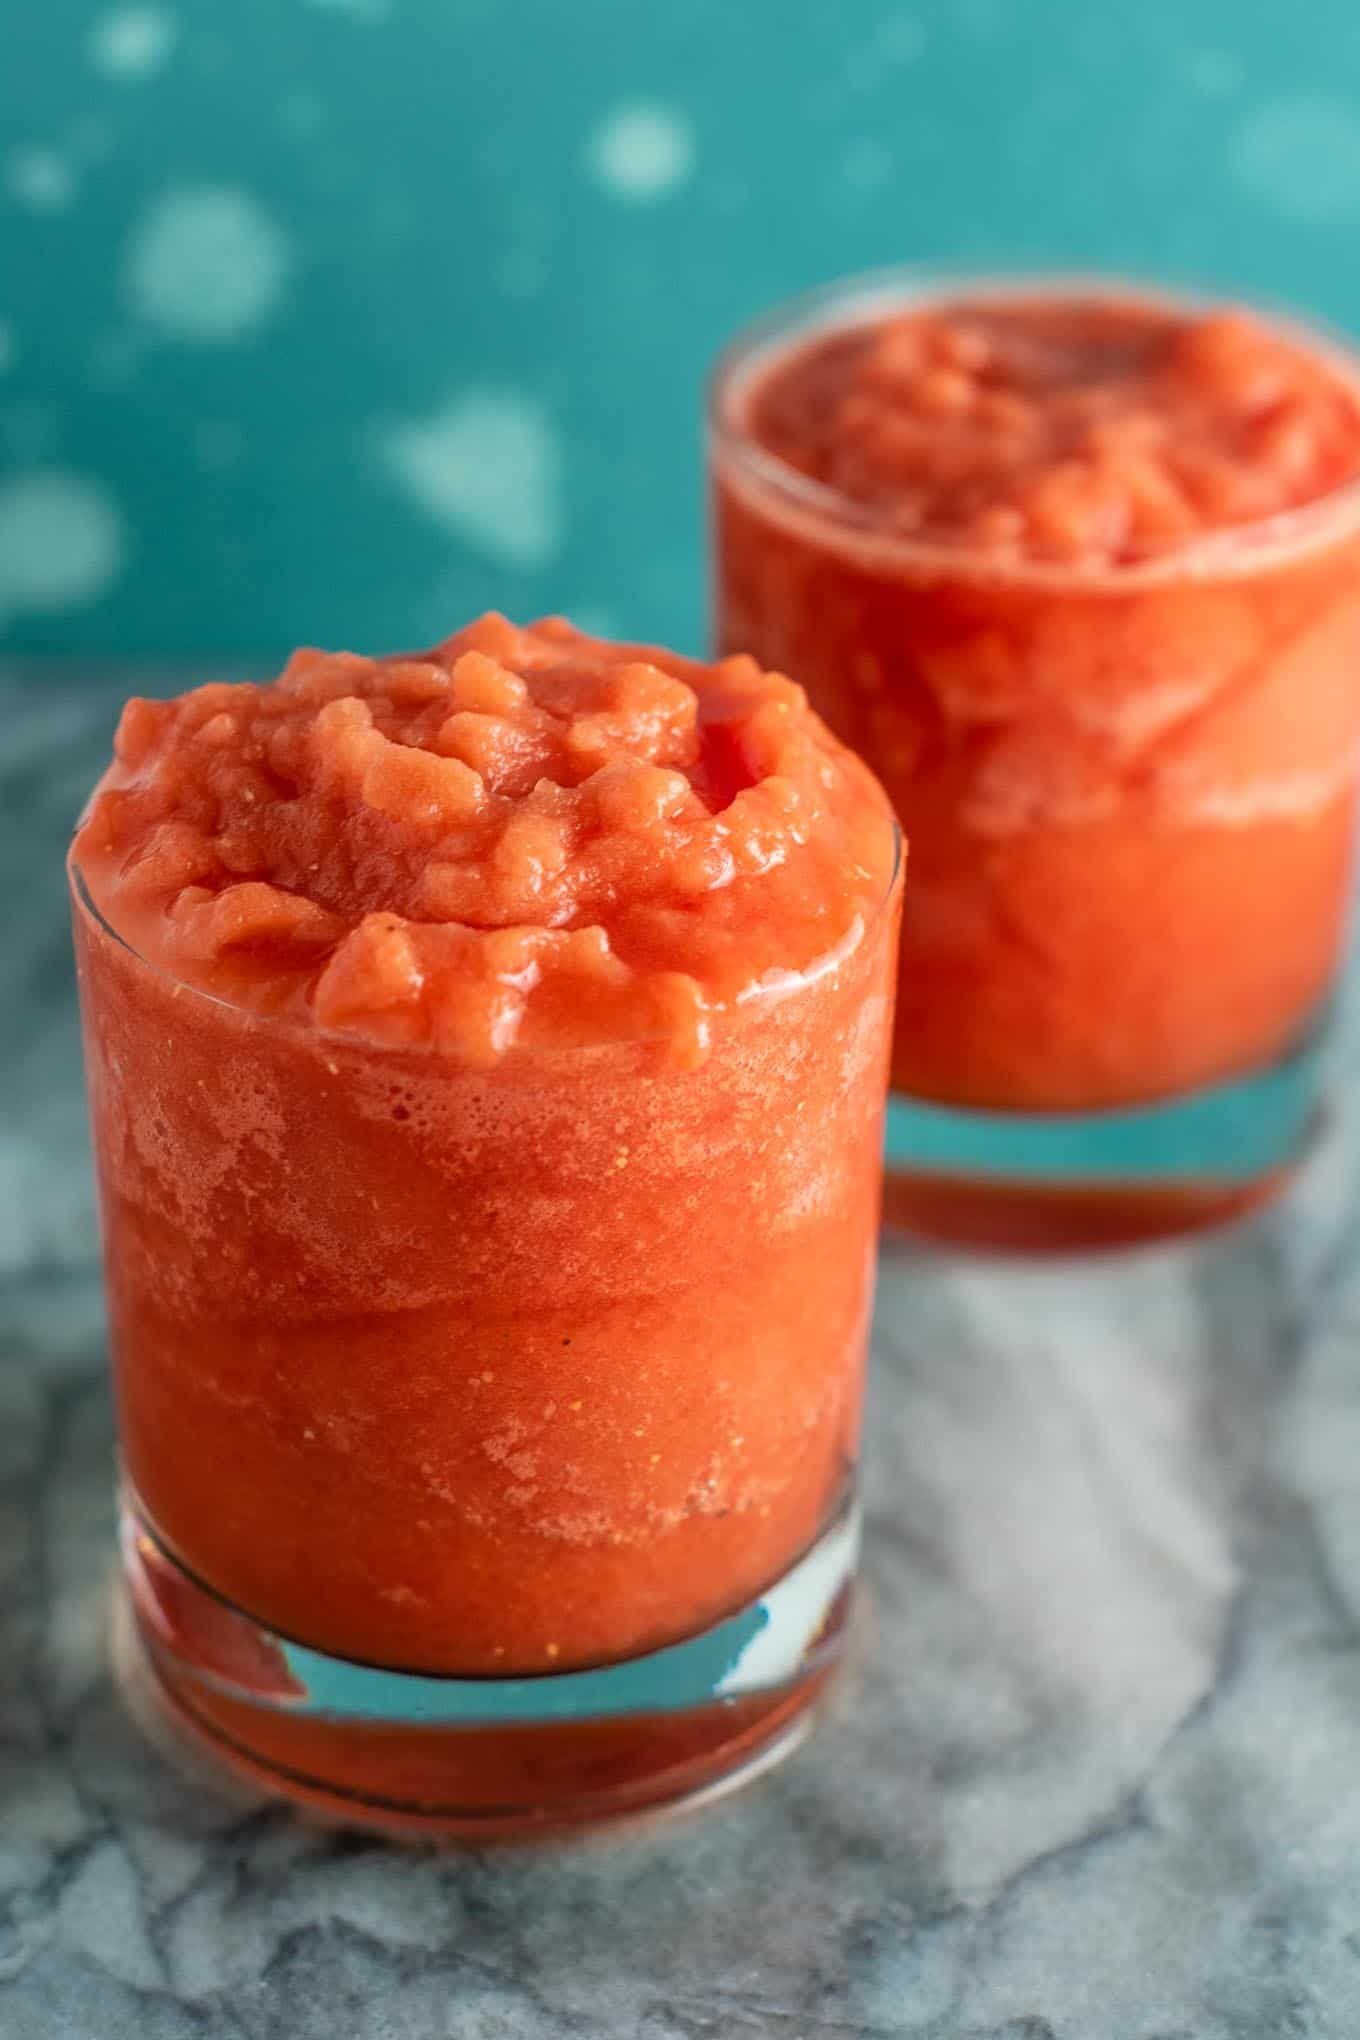 Frozen watermelon drink – healthy and refreshing summer drink! Made with just fresh lime, frozen watermelon, coconut water, and pure maple syurp. #frozenwatermelon #watermelondrink #summerdrink #healthy #coconutwater #lime #watermelonlime